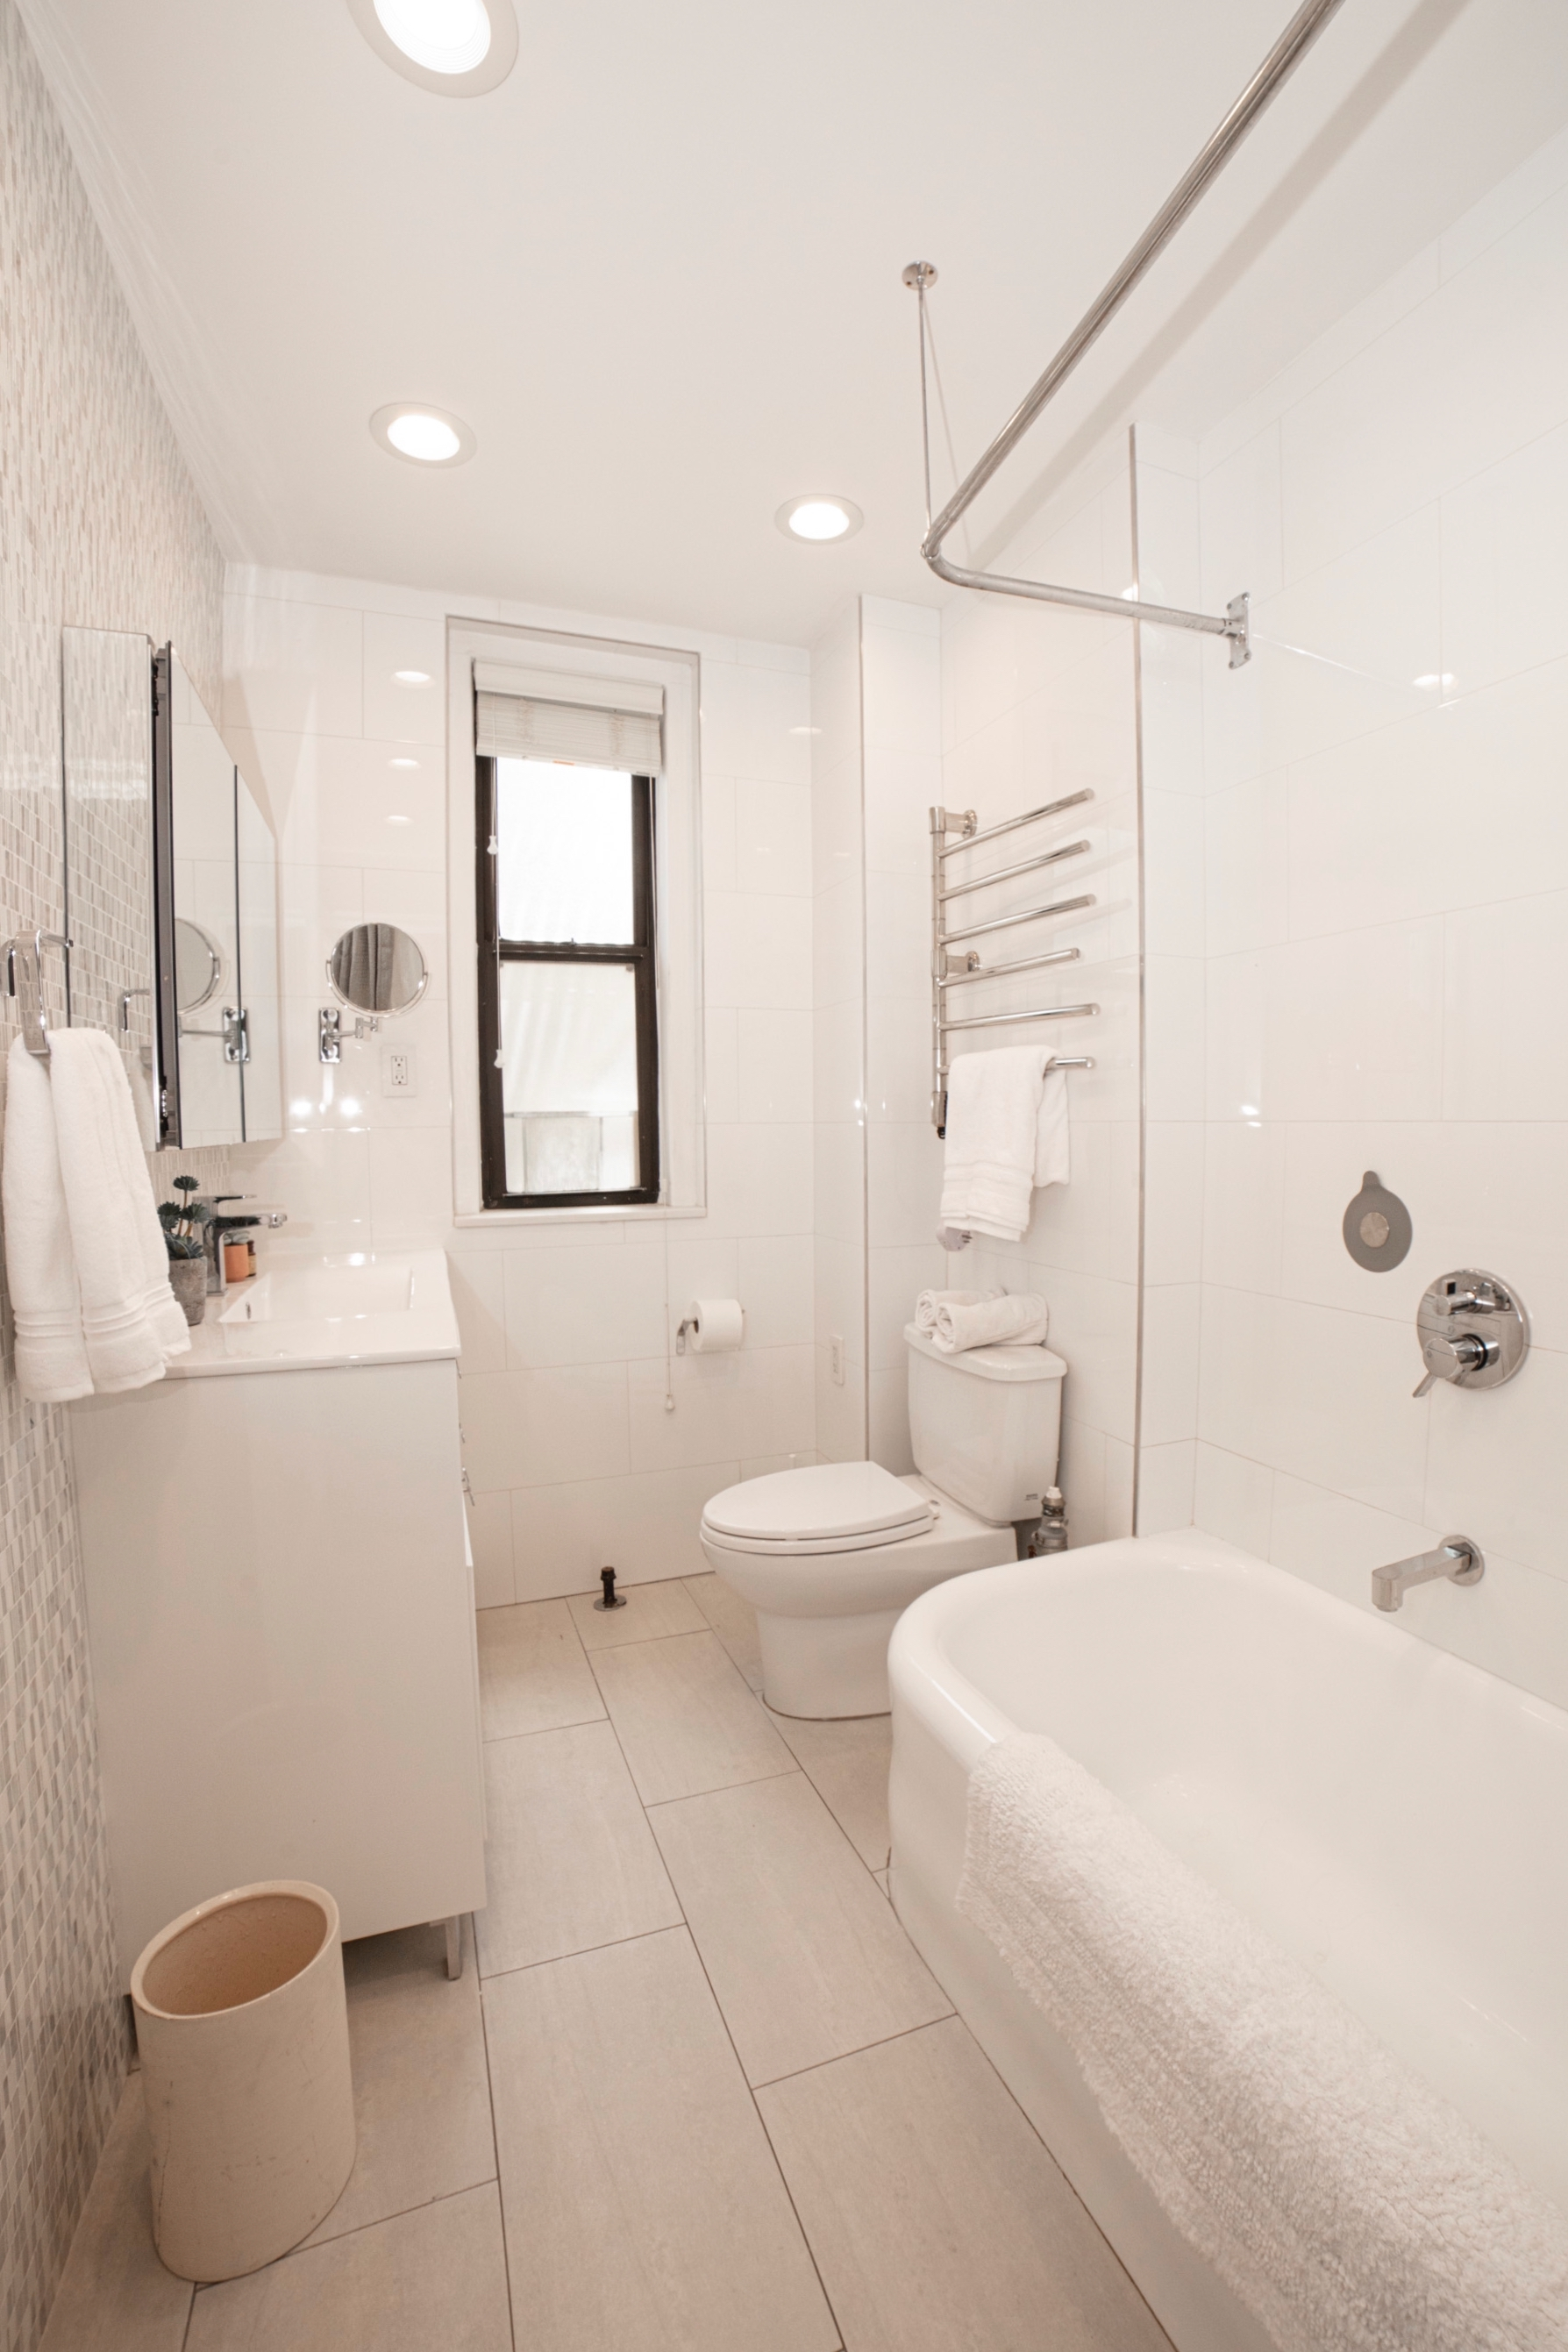 175 West 73rd Street Upper West Side New York NY 10023